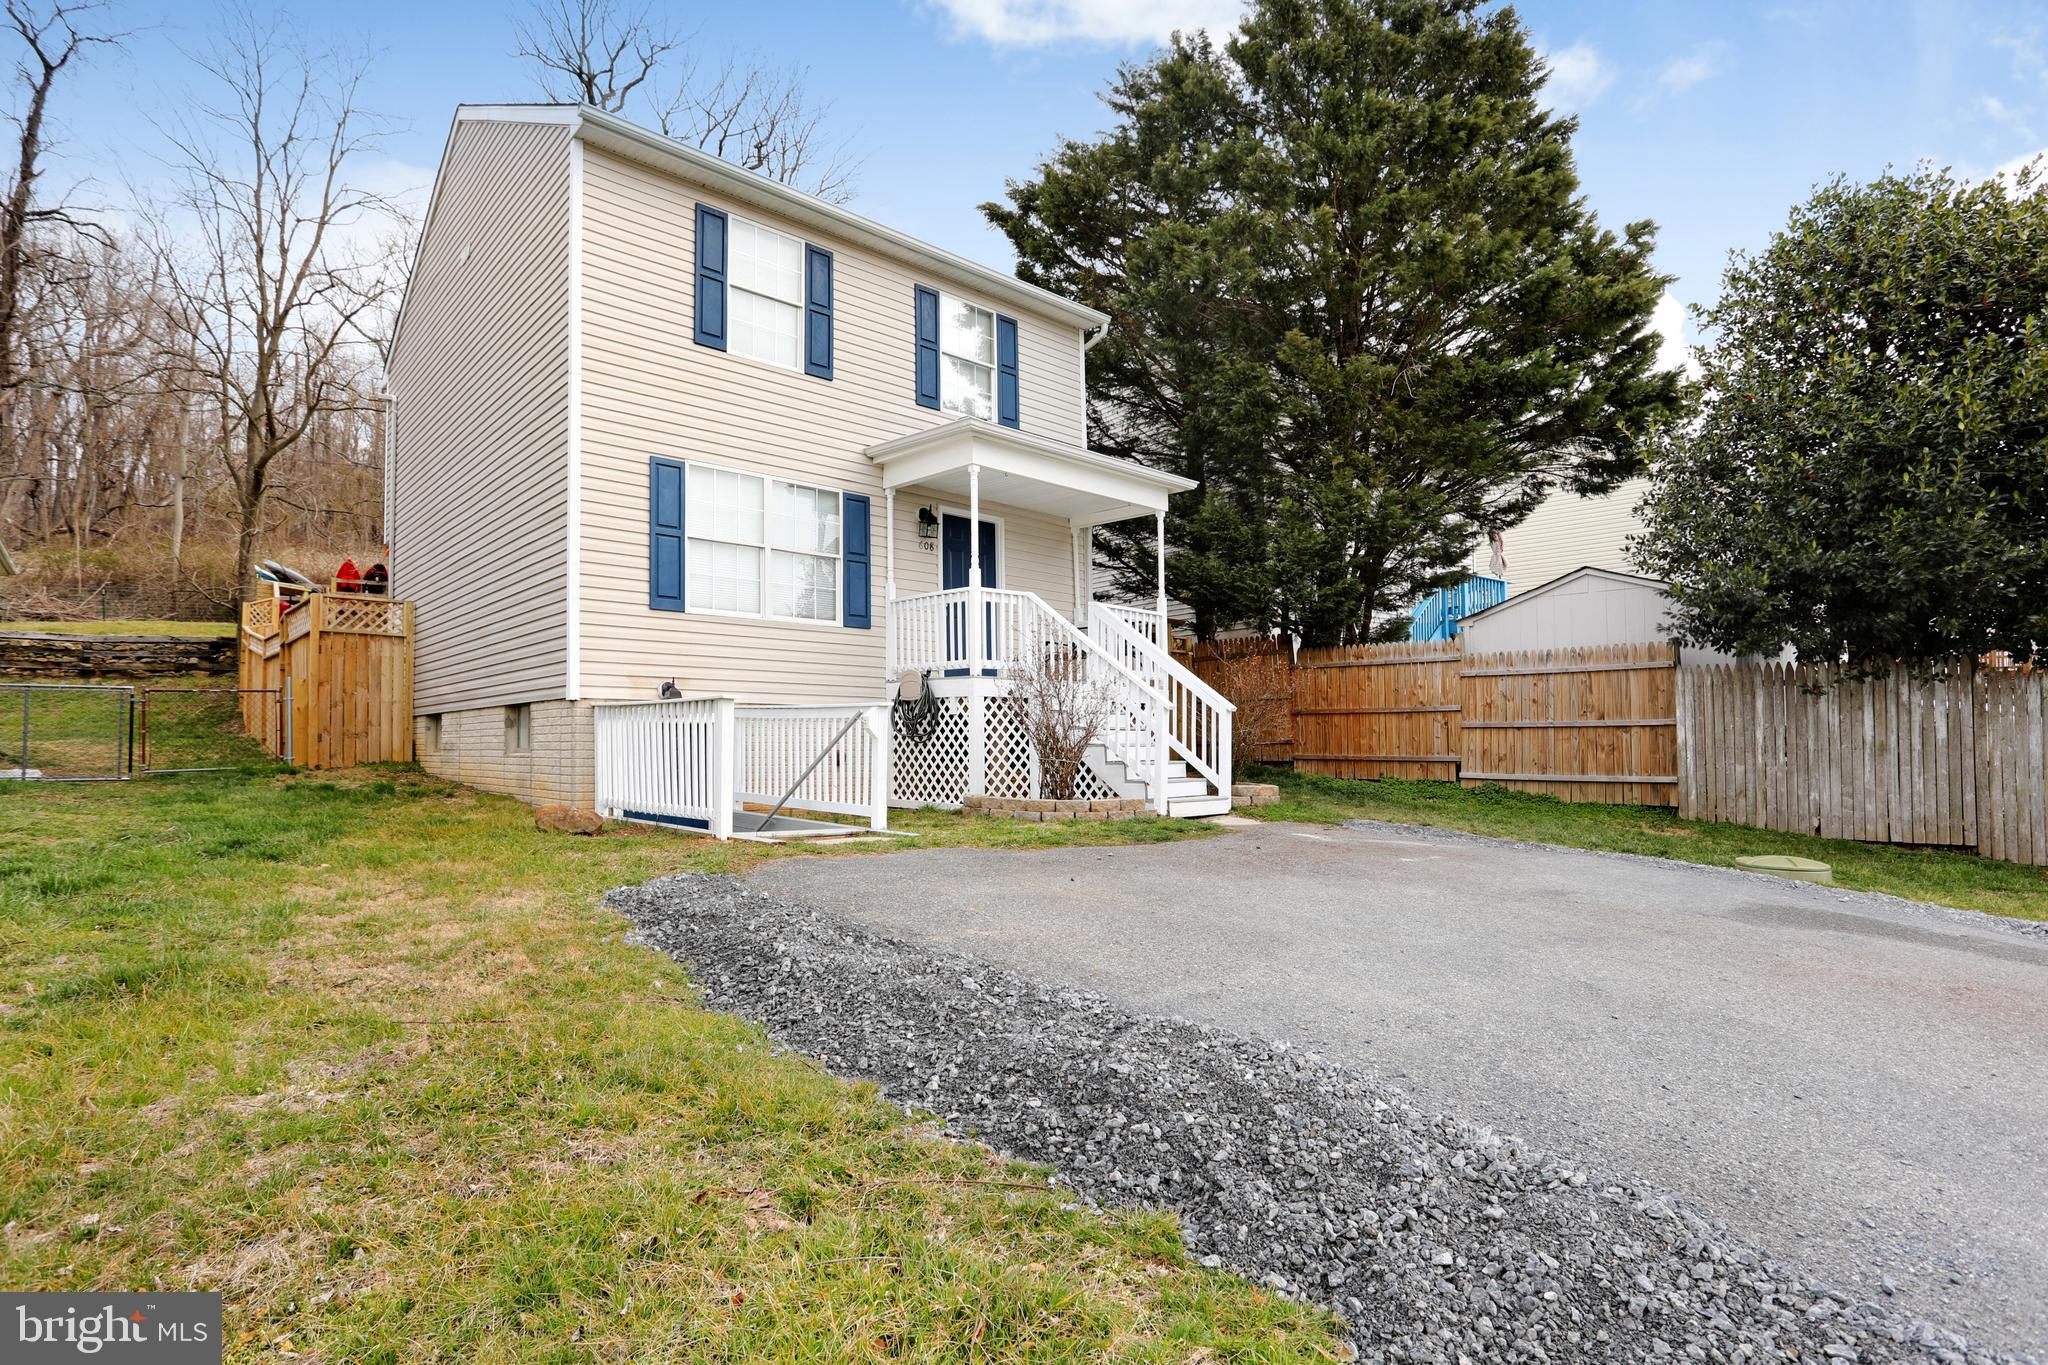 608 TRITAPOE DRIVE, KNOXVILLE, MD 21758